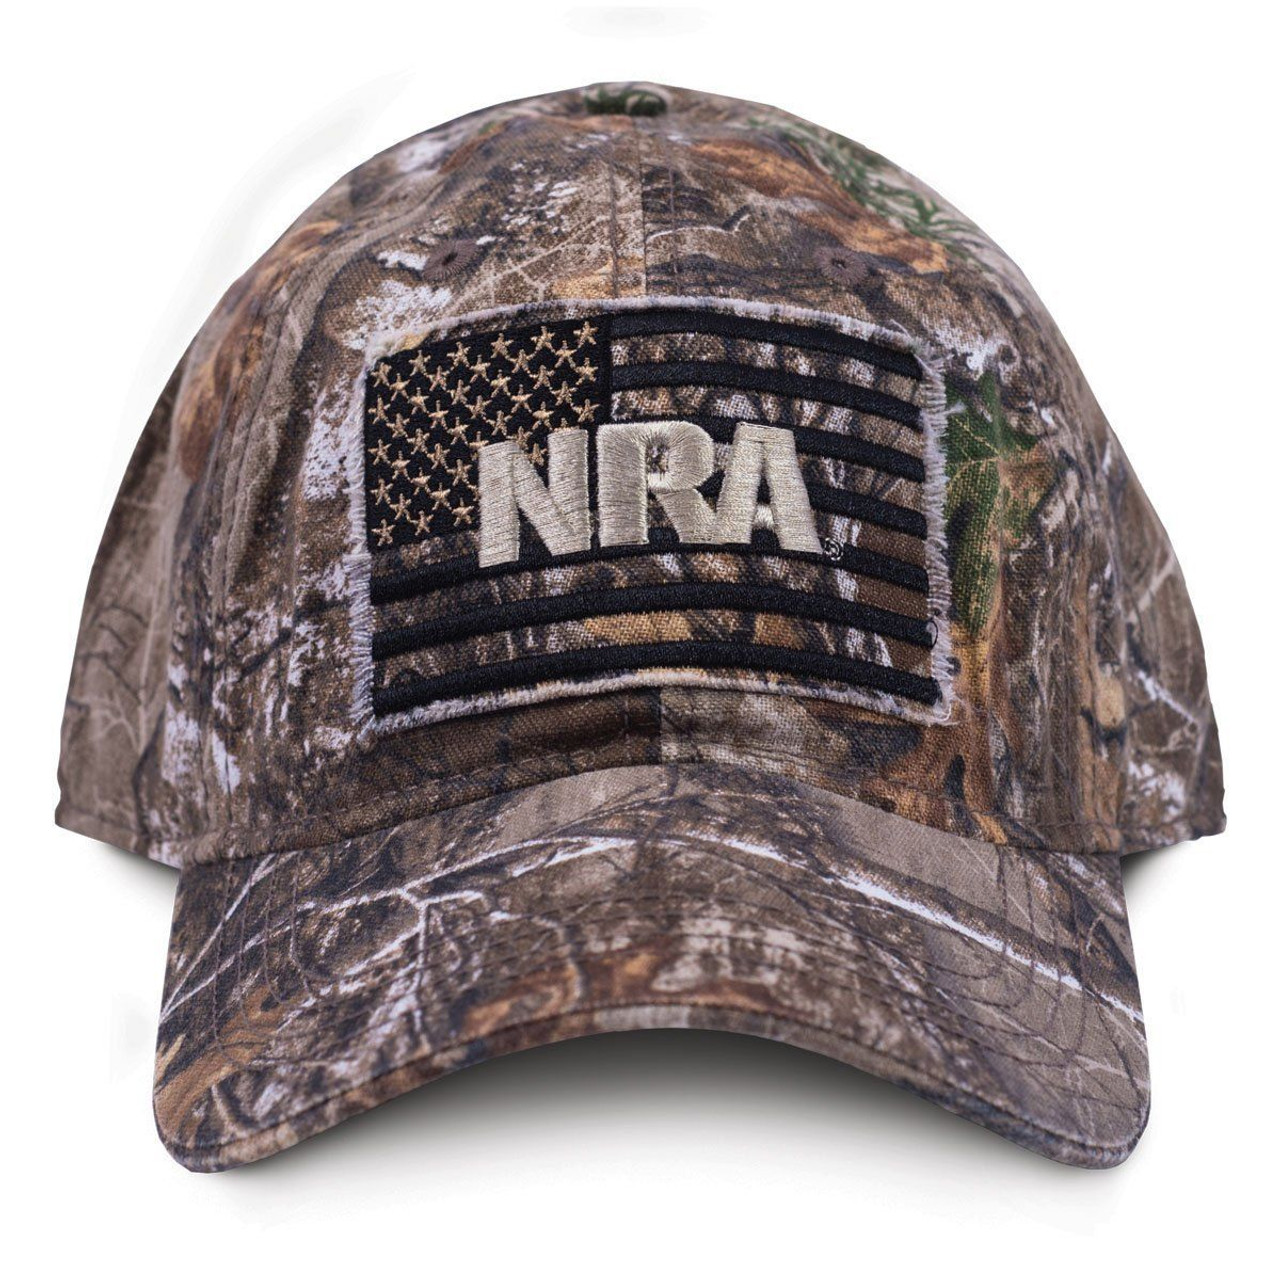 Buck Wear NRA Smooth Operator Camouflage Hat Cap American Flag USA  Adjustable 1d88413a679